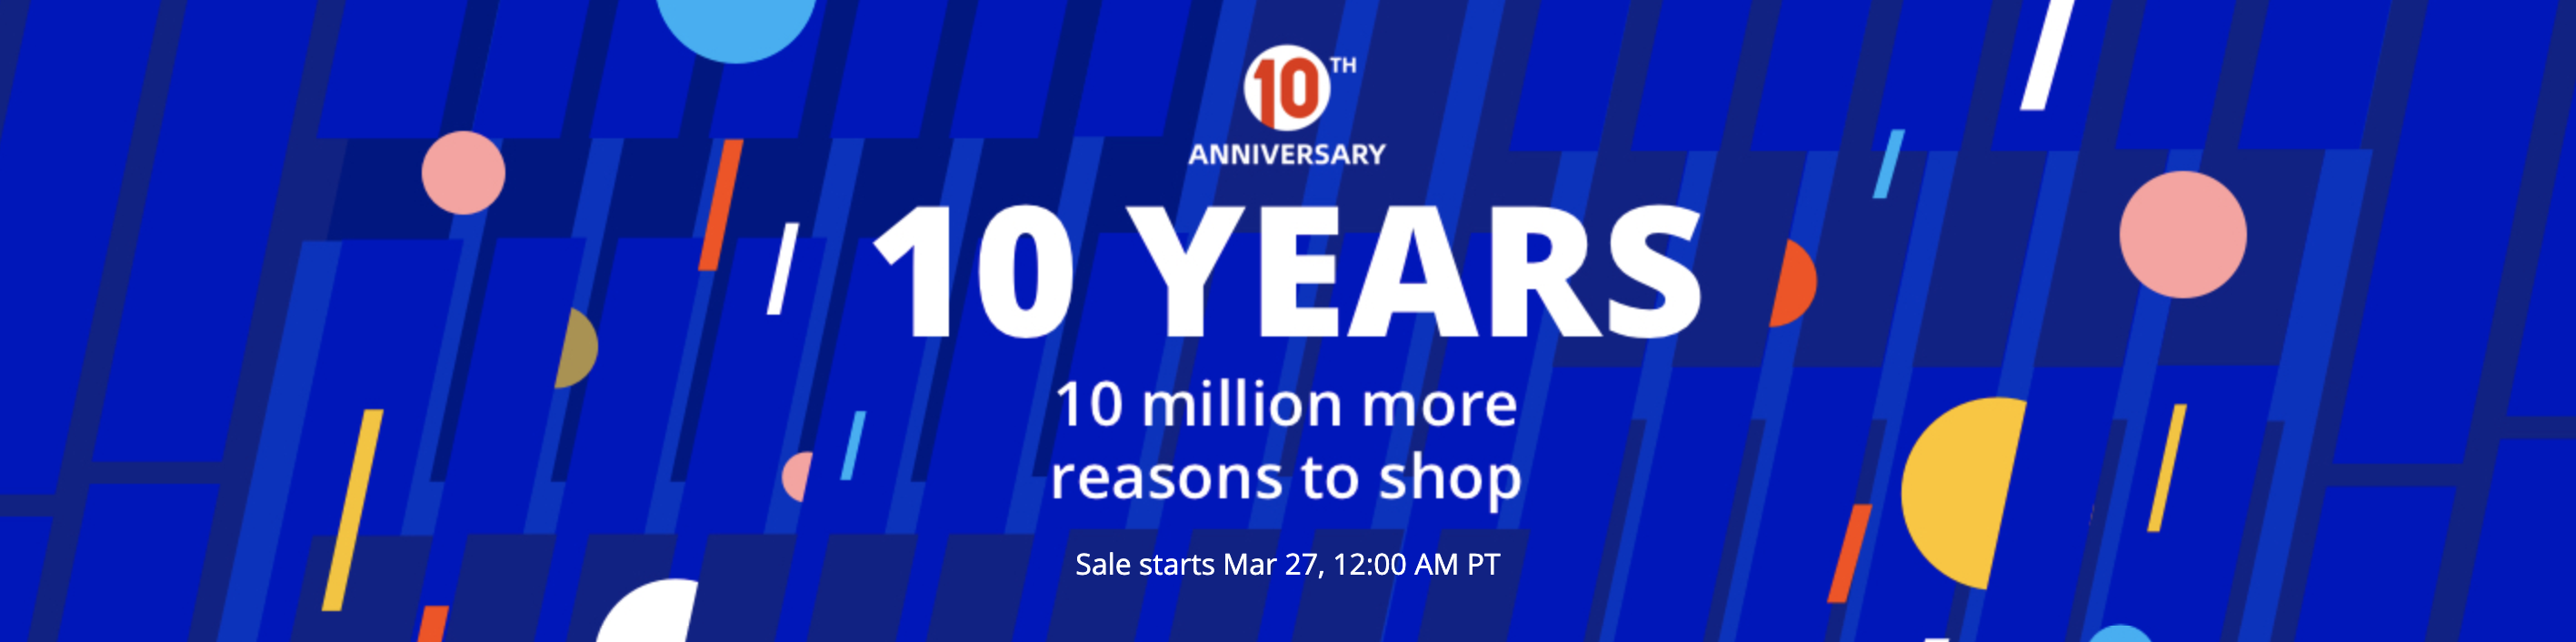 Aliexpress 10th Anniversary Sale Guide Aliexpress Blog